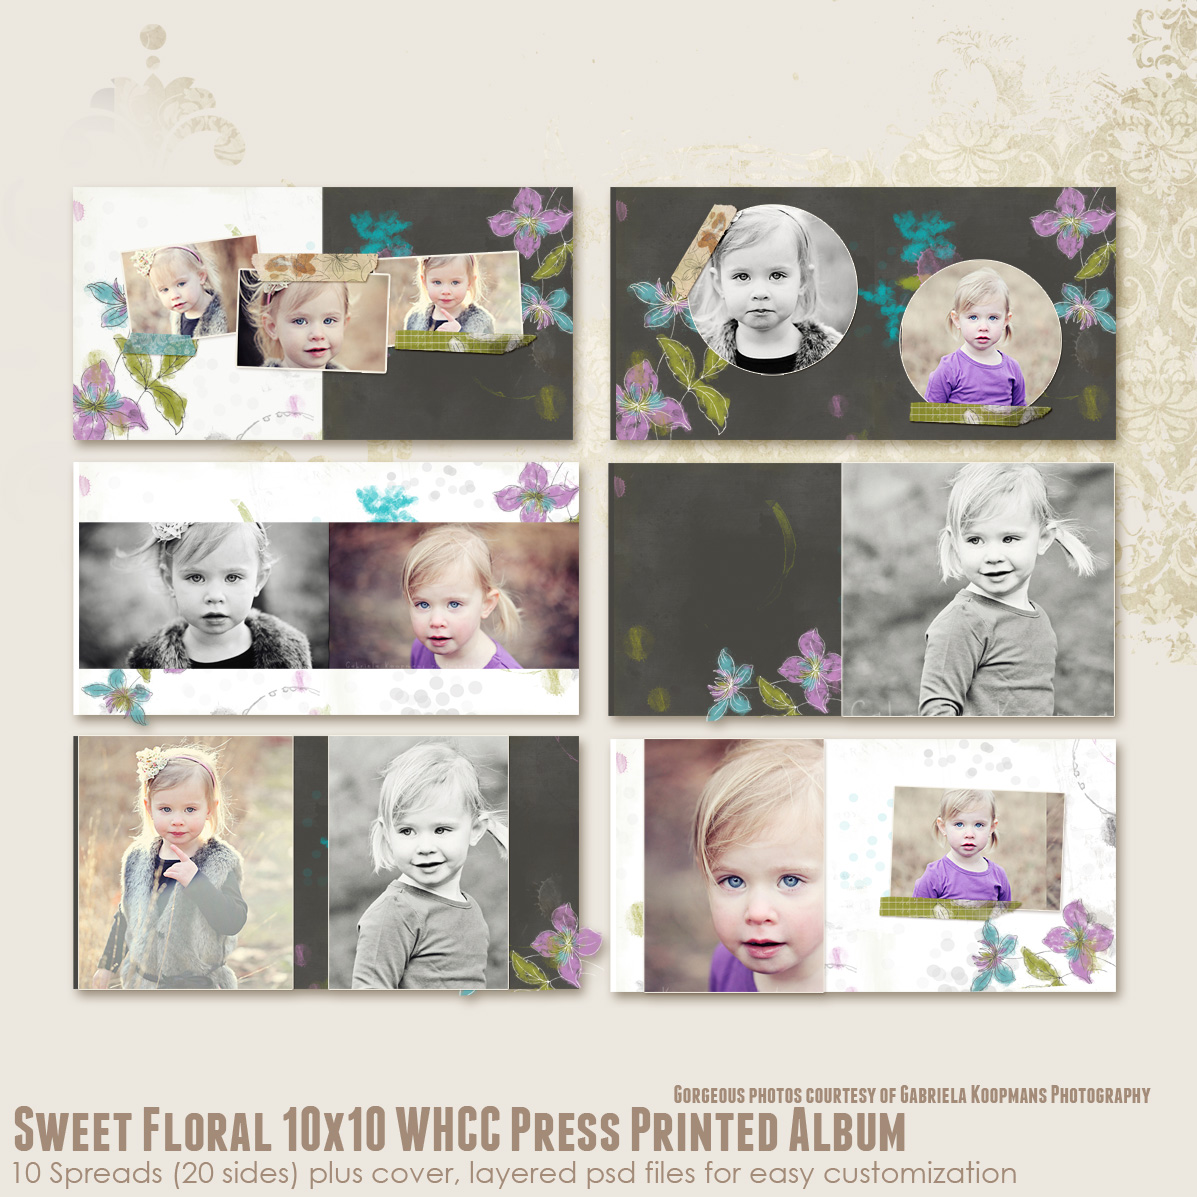 Sweet Floral 10x10 WHCC Press Printed Album